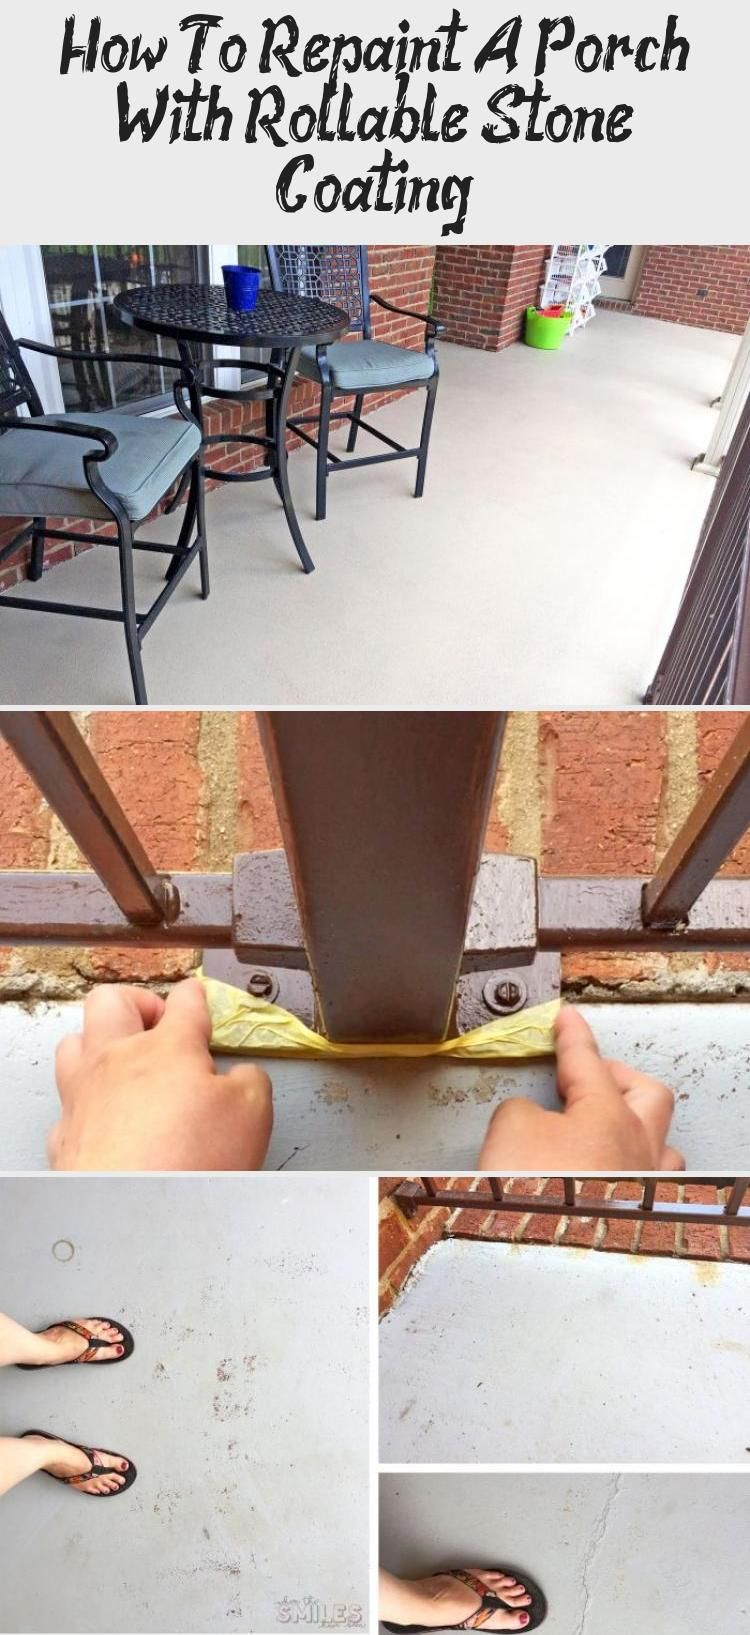 How to repaint a porch with rollable stone coating